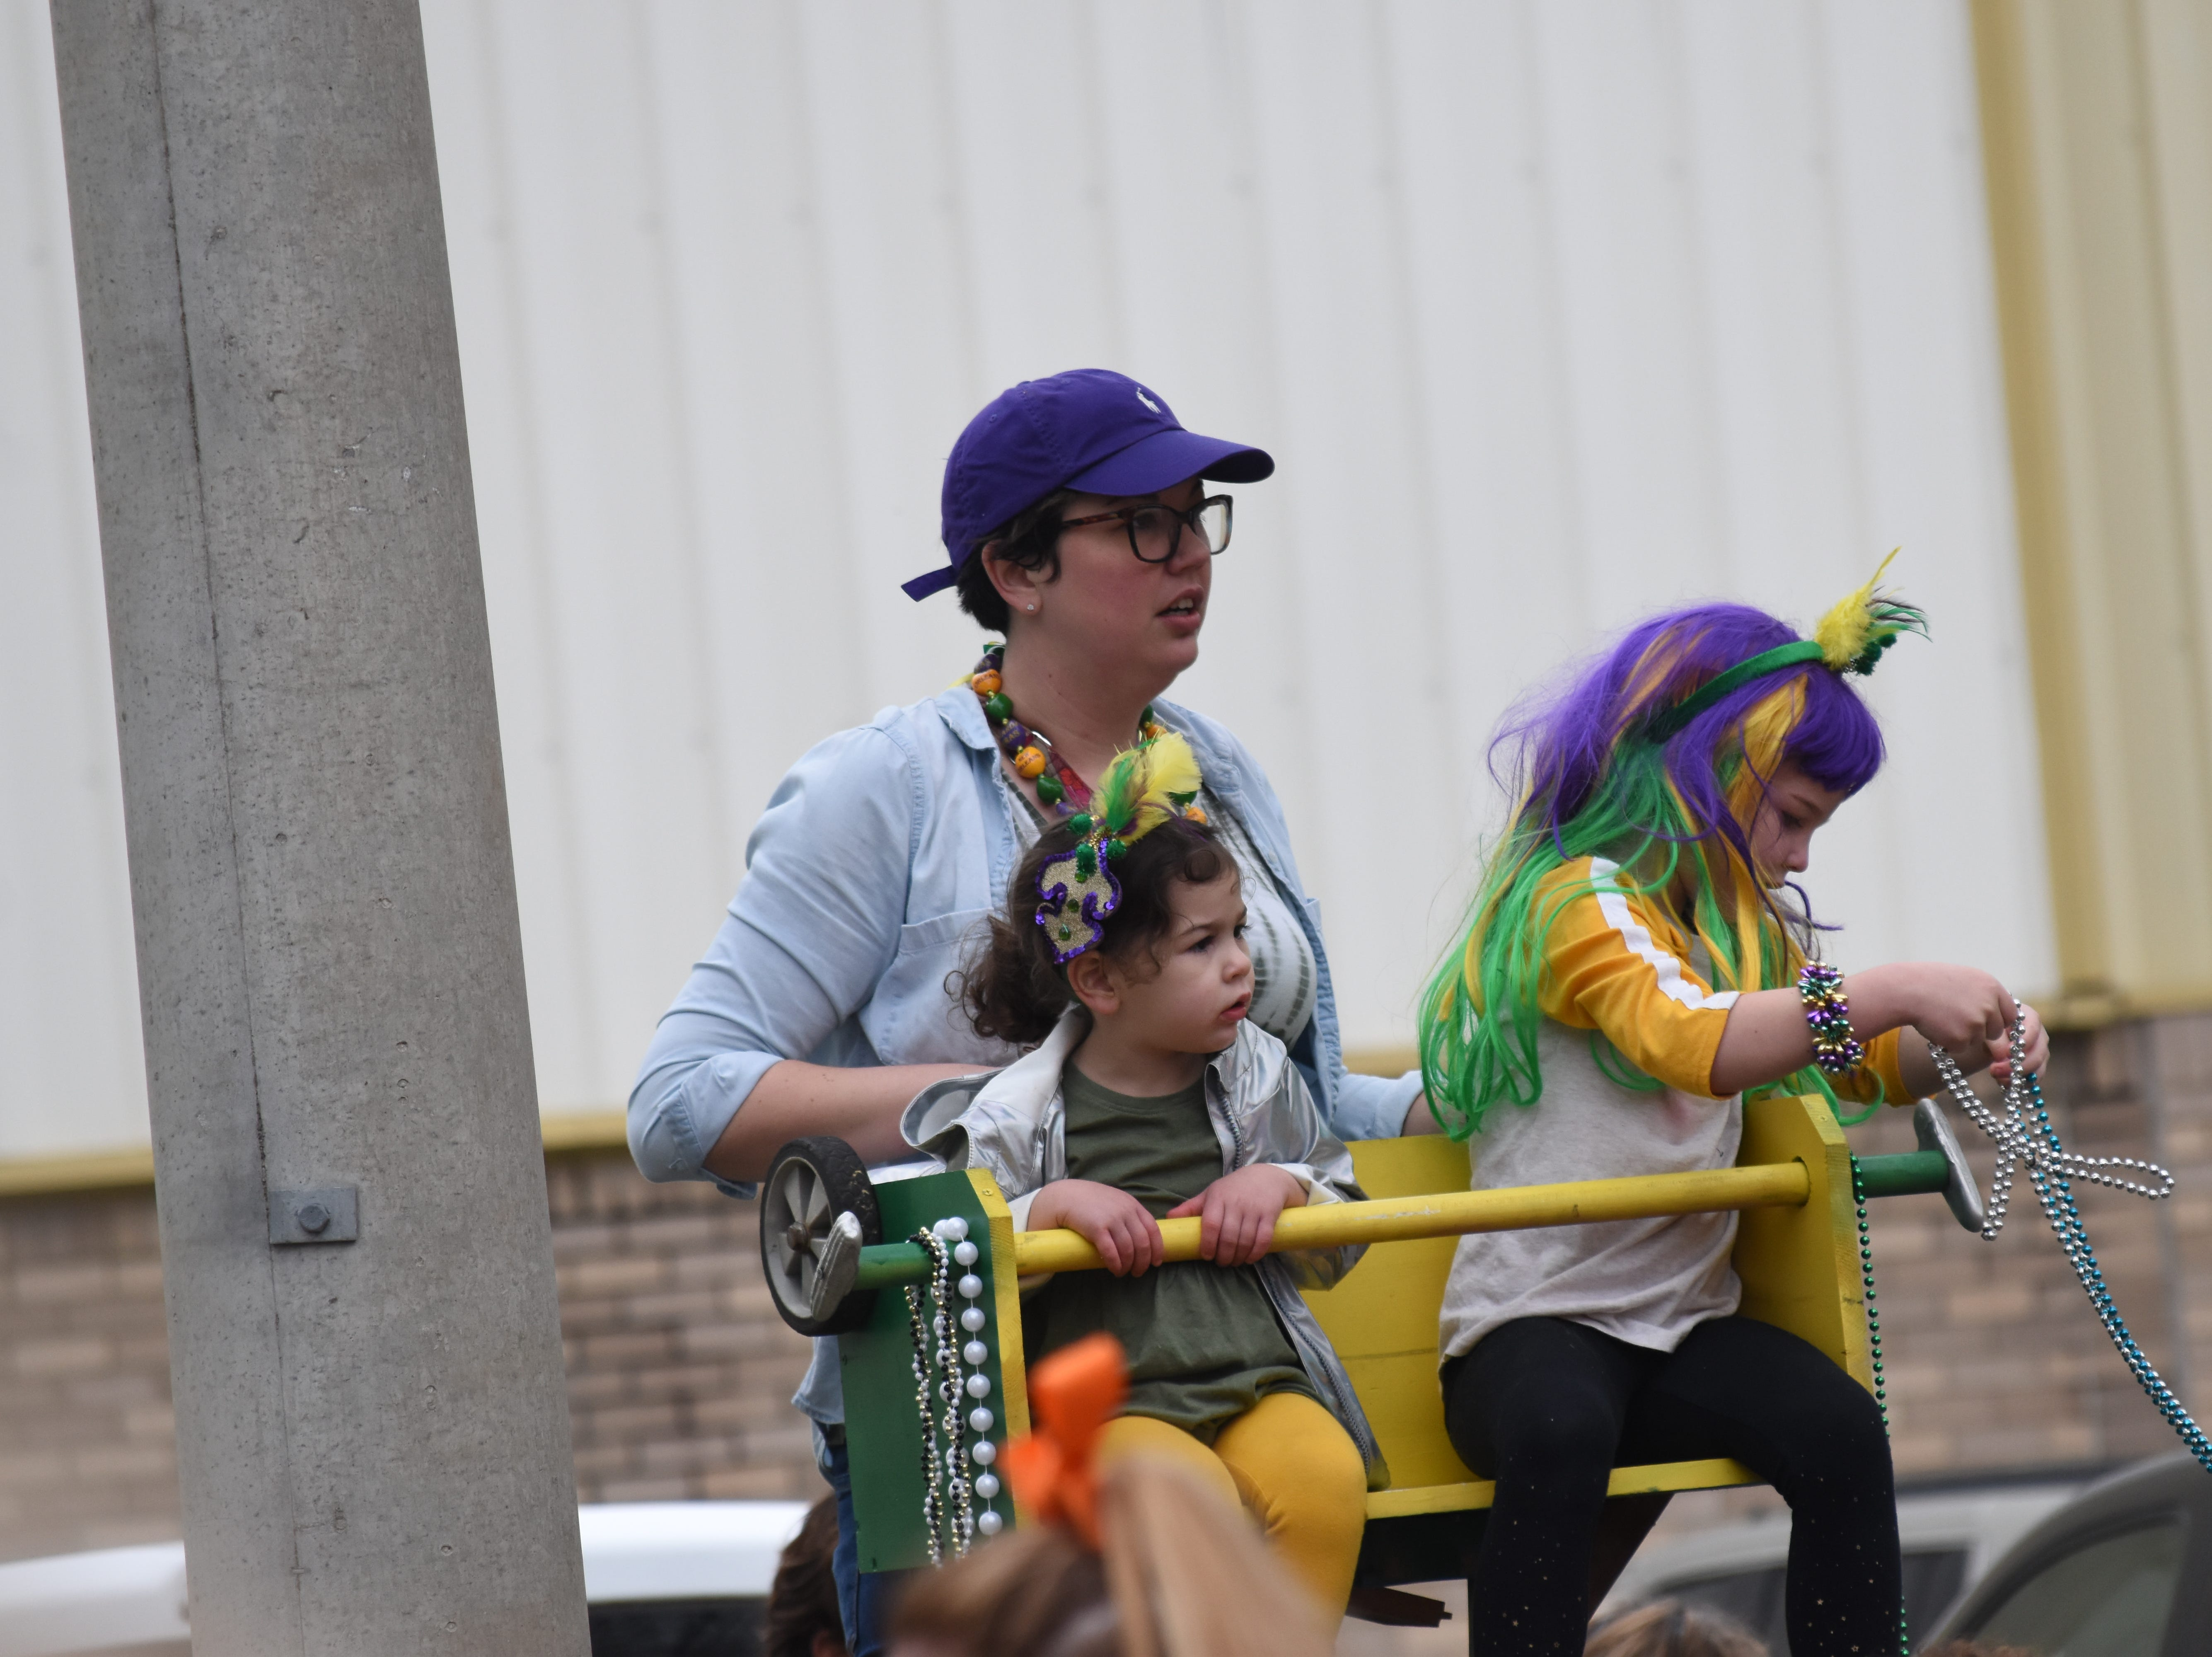 The Children's Mardi Gras Parade was held Saturday, March 2, 2019 in downtown Alexandria.